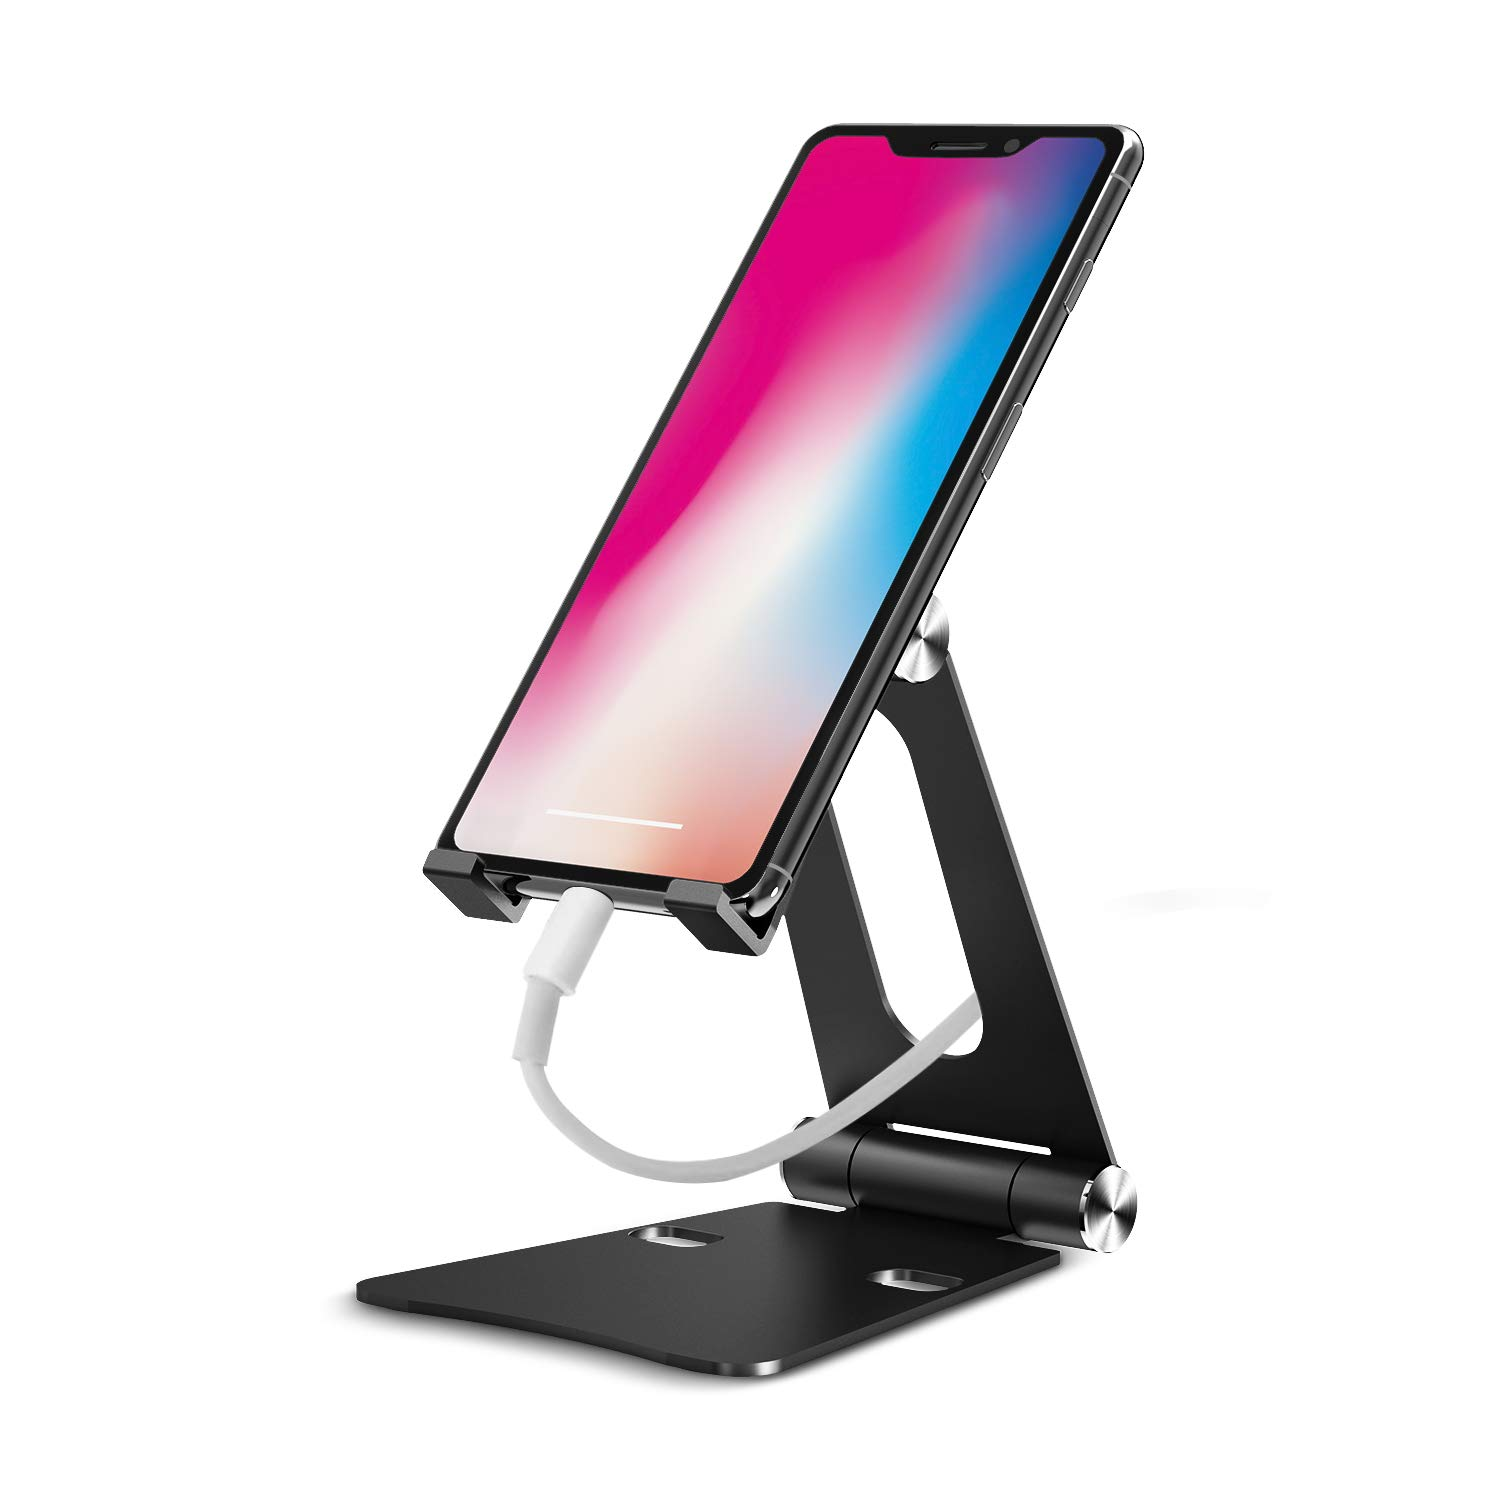 iKsee Cell Phone Stand, Adjustable Phone Stand, Dual Foldable Cell Phone Holder, Cradle, Dock for 4-10'' Android Smartphone iPhone X 8 7 6 6s Plus 5 5s 5c iPad Mini, Desk Accessories-Black